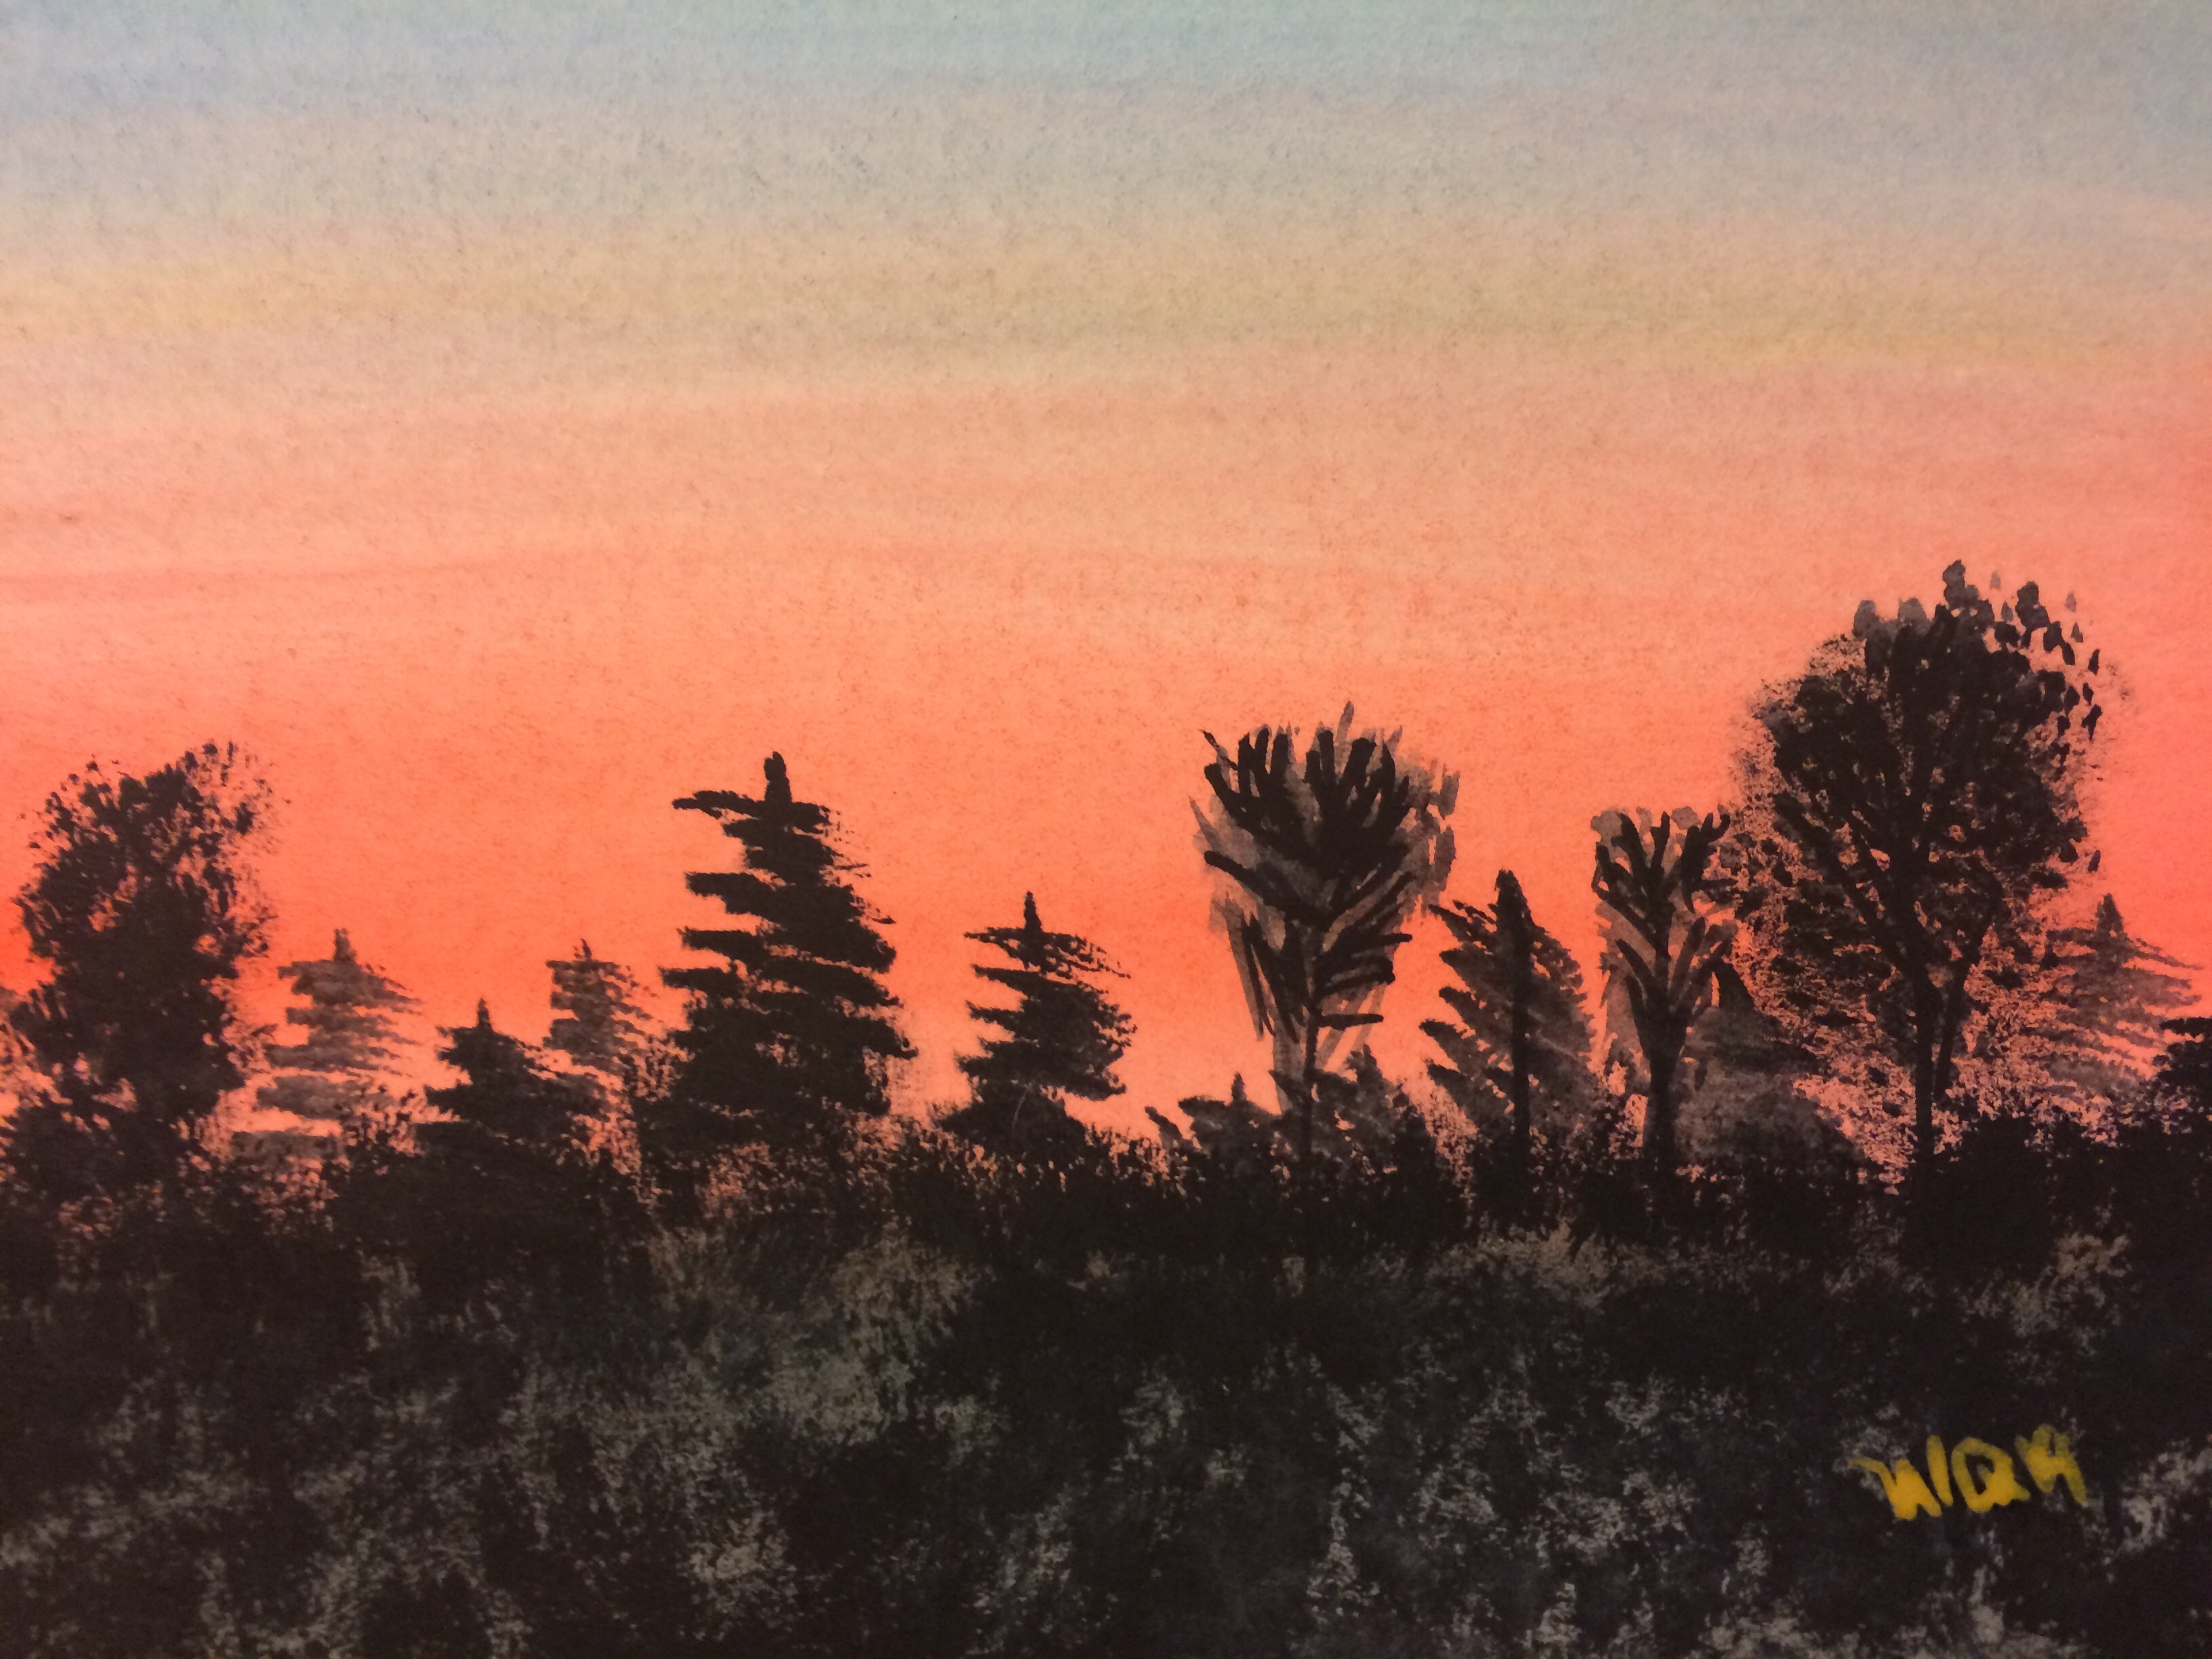 watercolour painting of trees silhouetted against a red sky at sunset